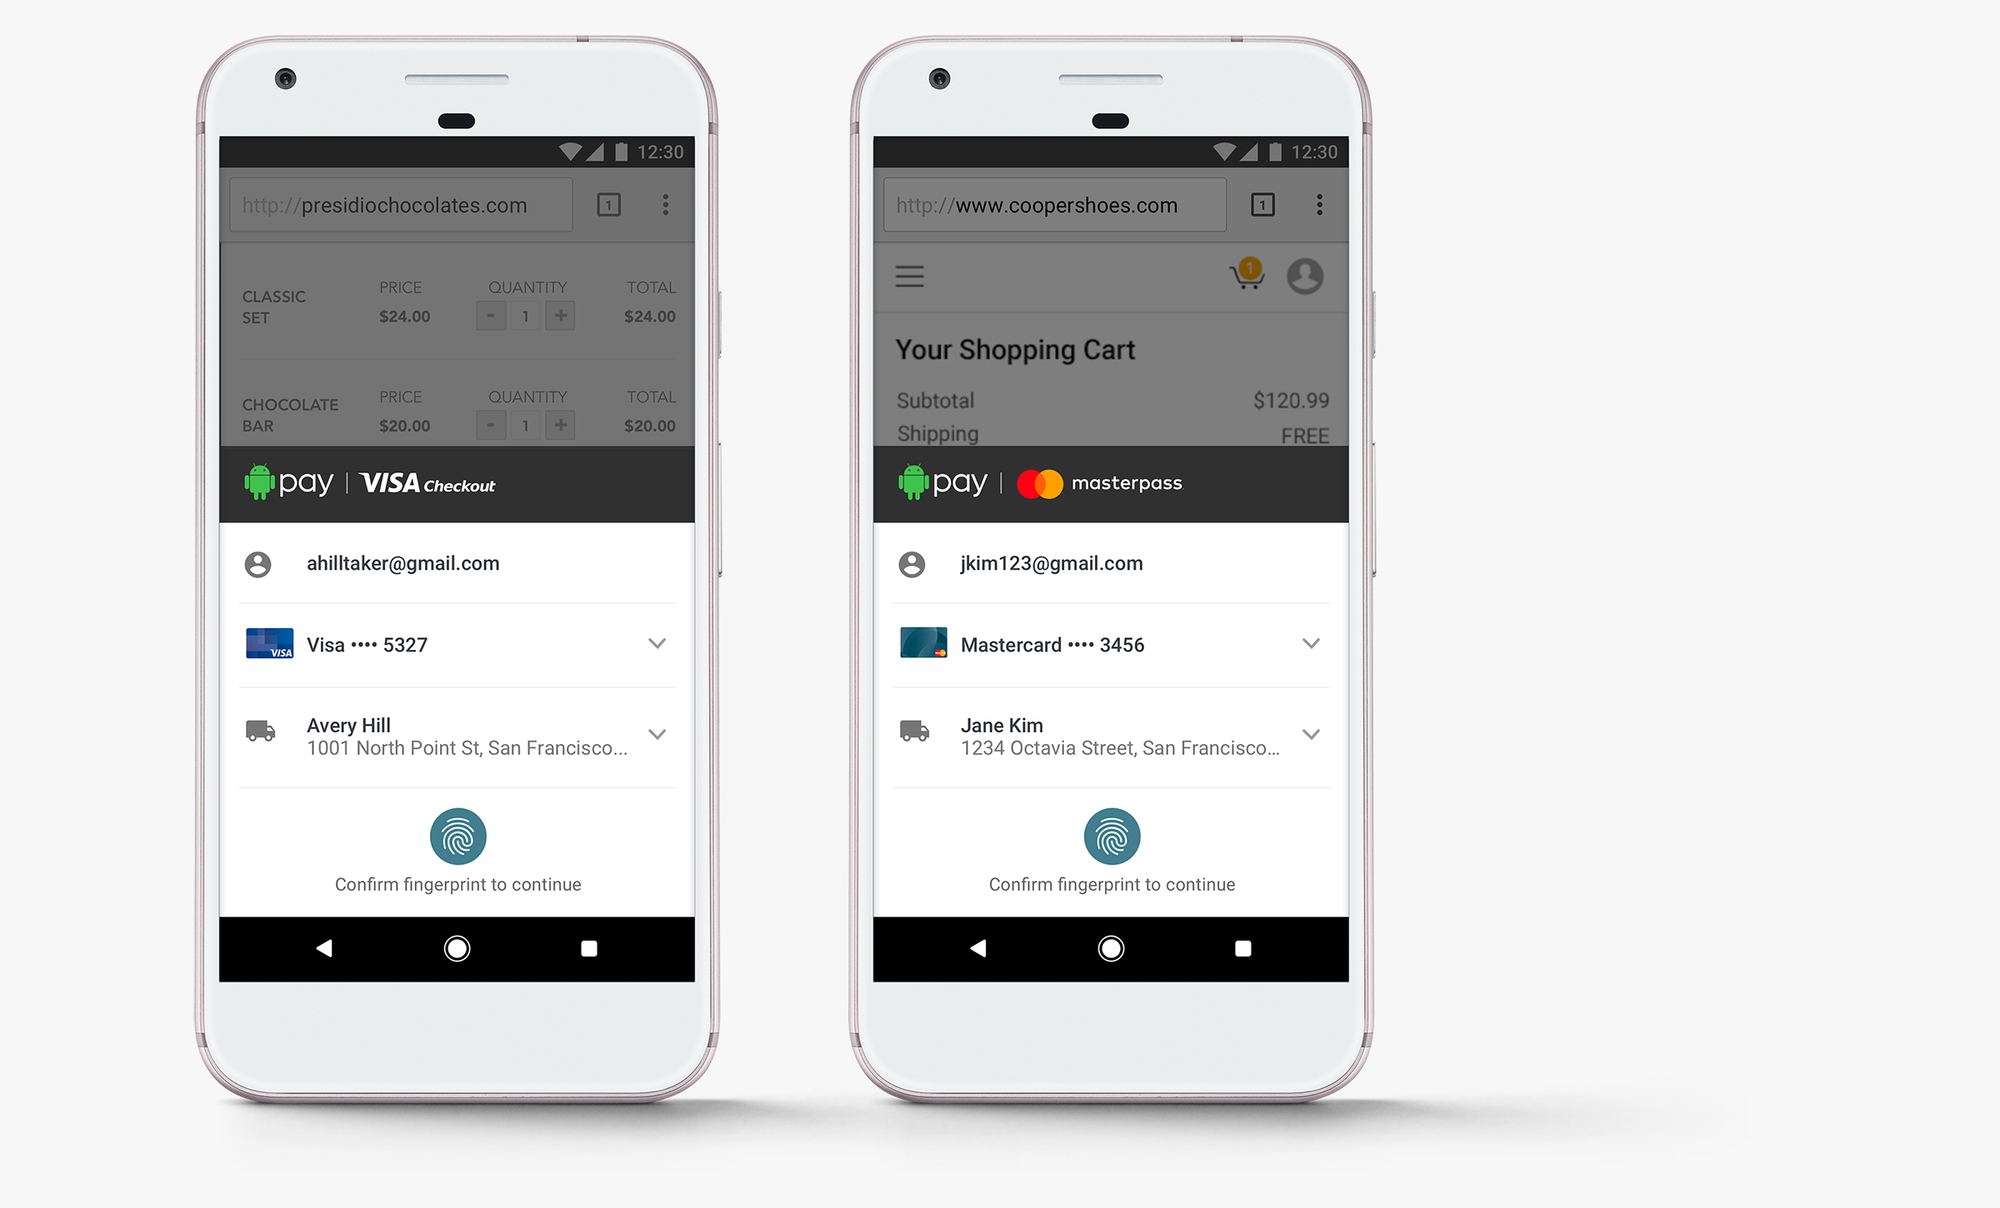 android pay - visa checkout mobile app - Pakistani Google